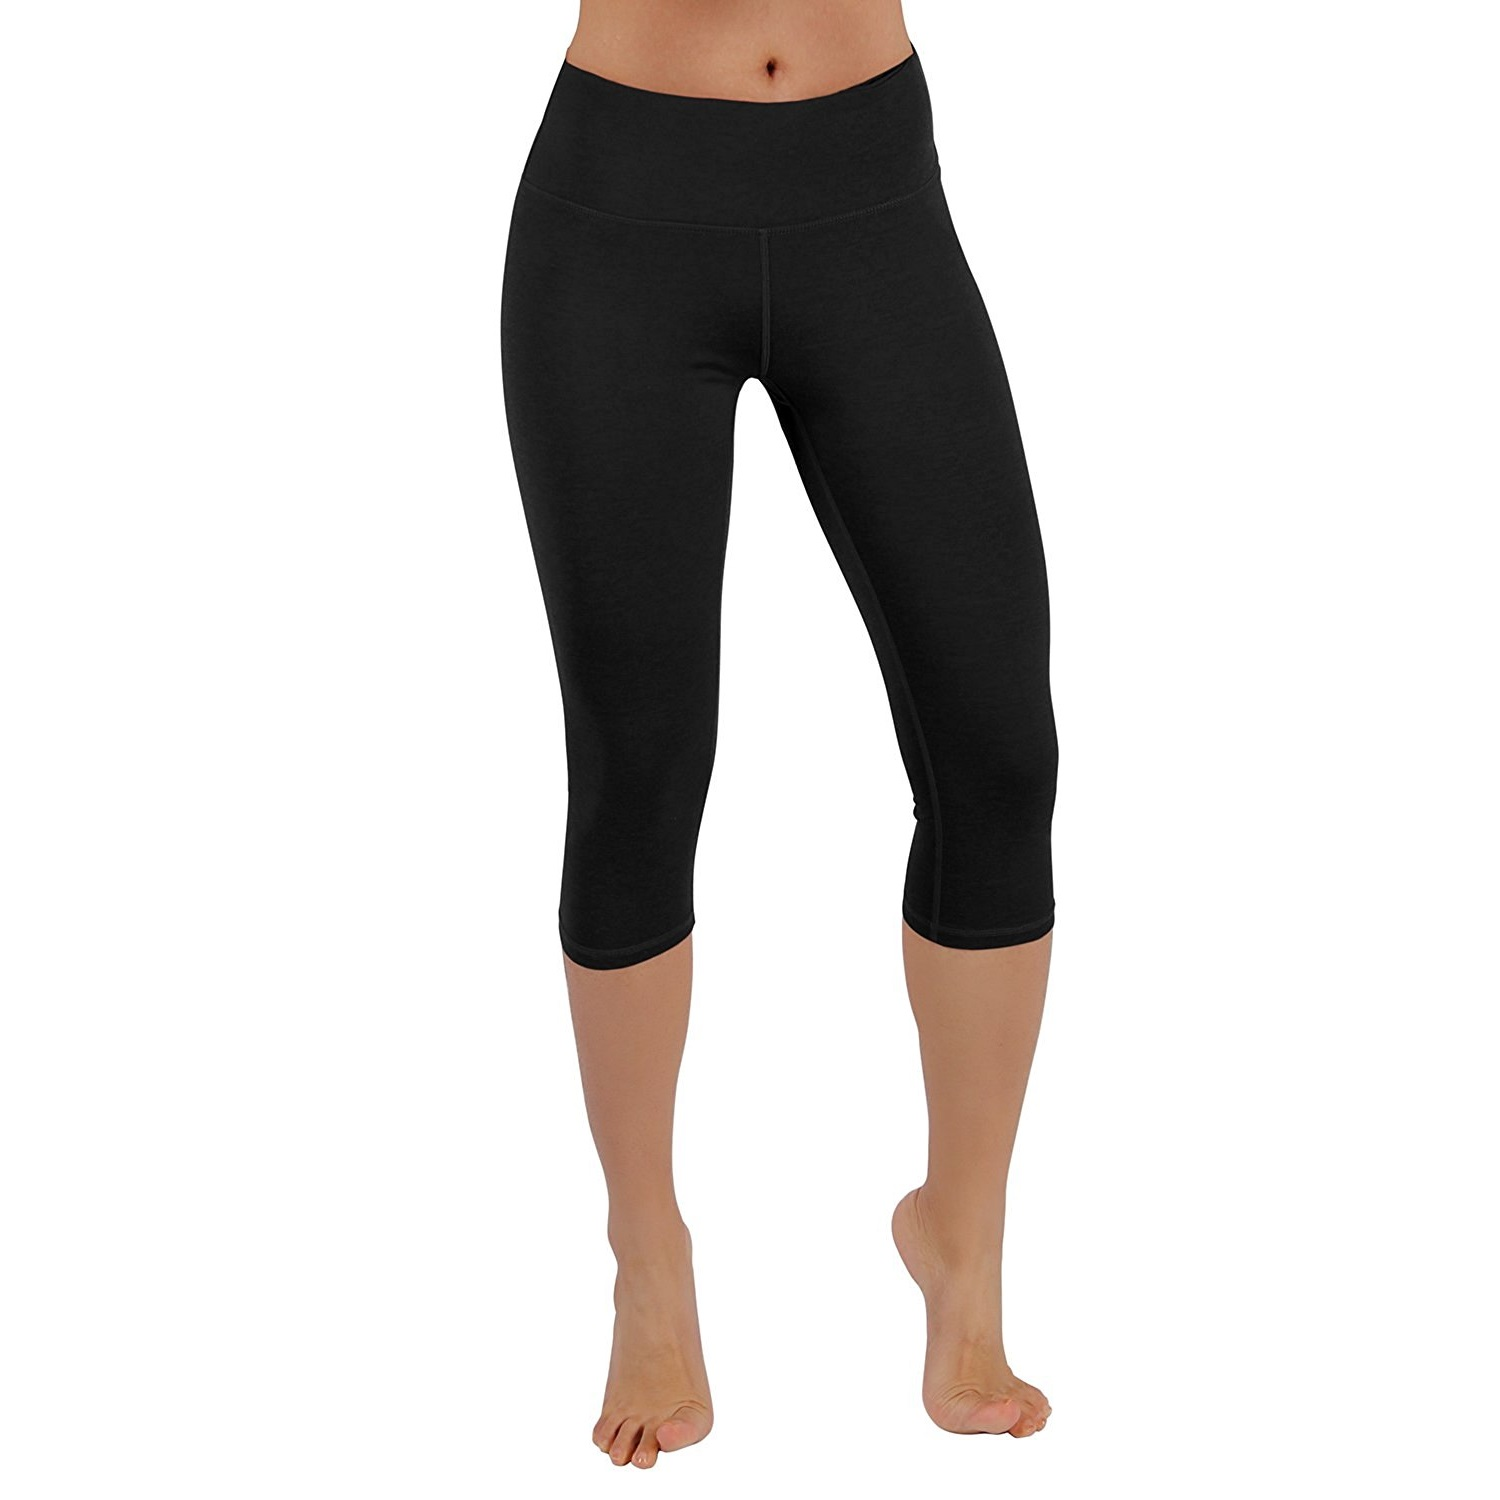 new style incredible prices classic ODODOS Power Flex Women's 4-Way Stretch Yoga Capri Pants